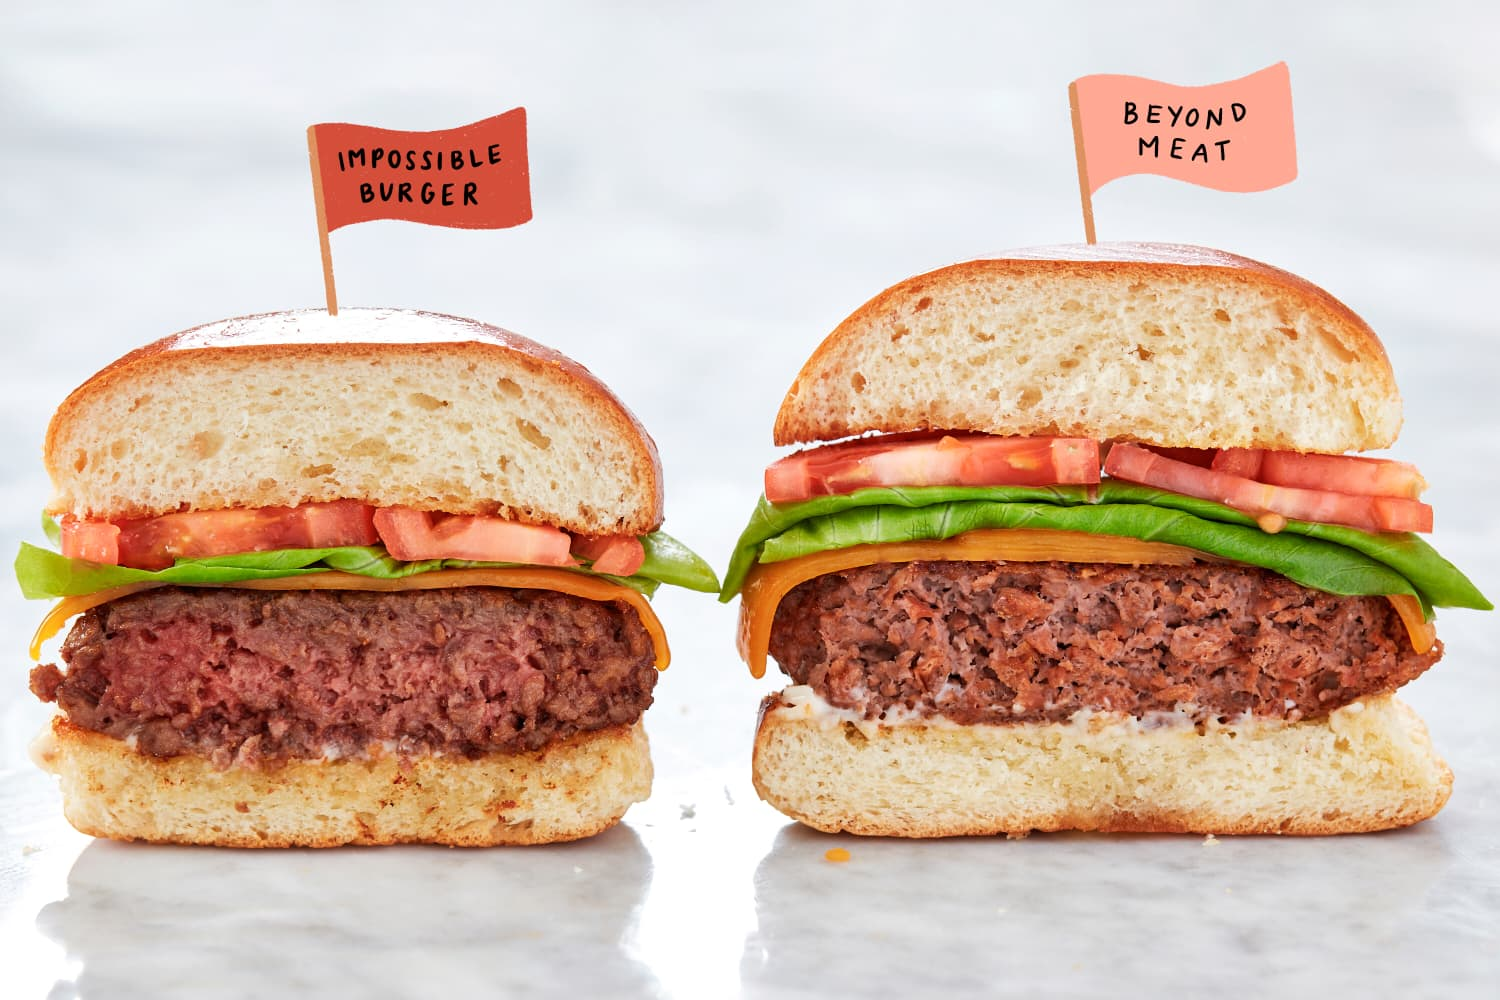 We Pitted Beyond Beef Against Impossible Burger in a Few Different Taste Tests